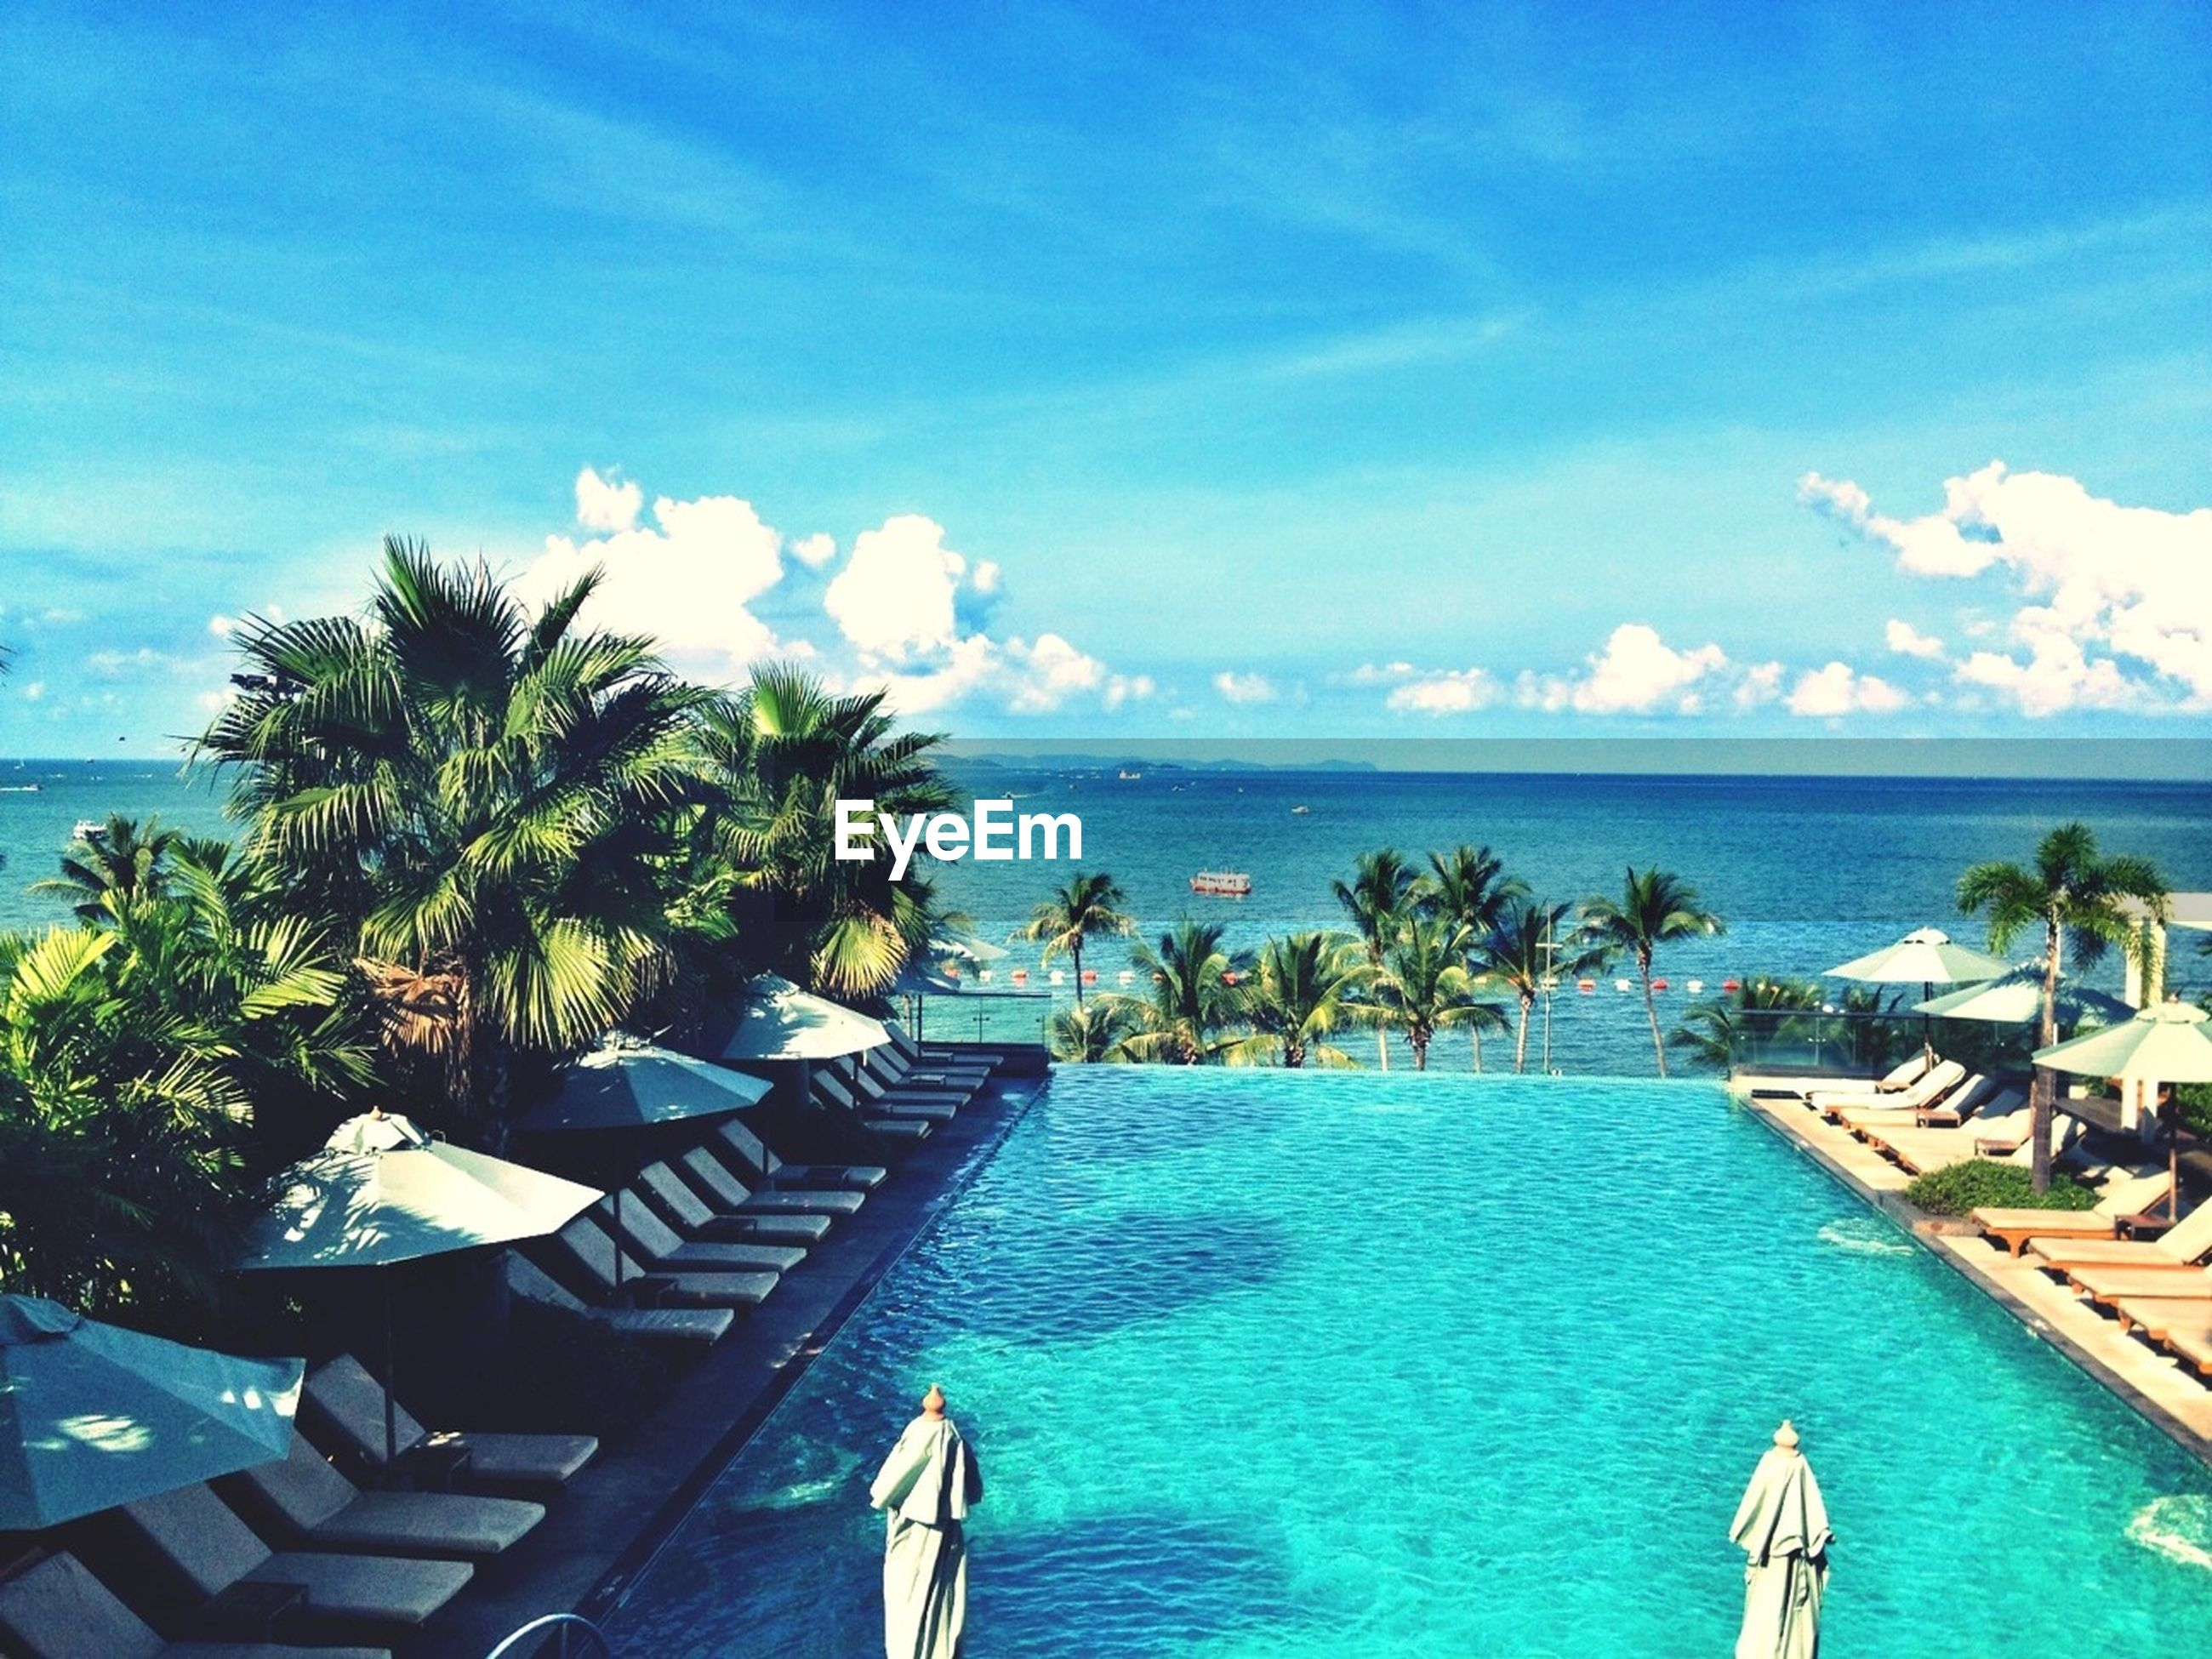 sea, water, horizon over water, blue, palm tree, sky, tranquil scene, scenics, beauty in nature, tranquility, tree, beach, nature, tourist resort, cloud - sky, turquoise colored, idyllic, swimming pool, cloud, ocean